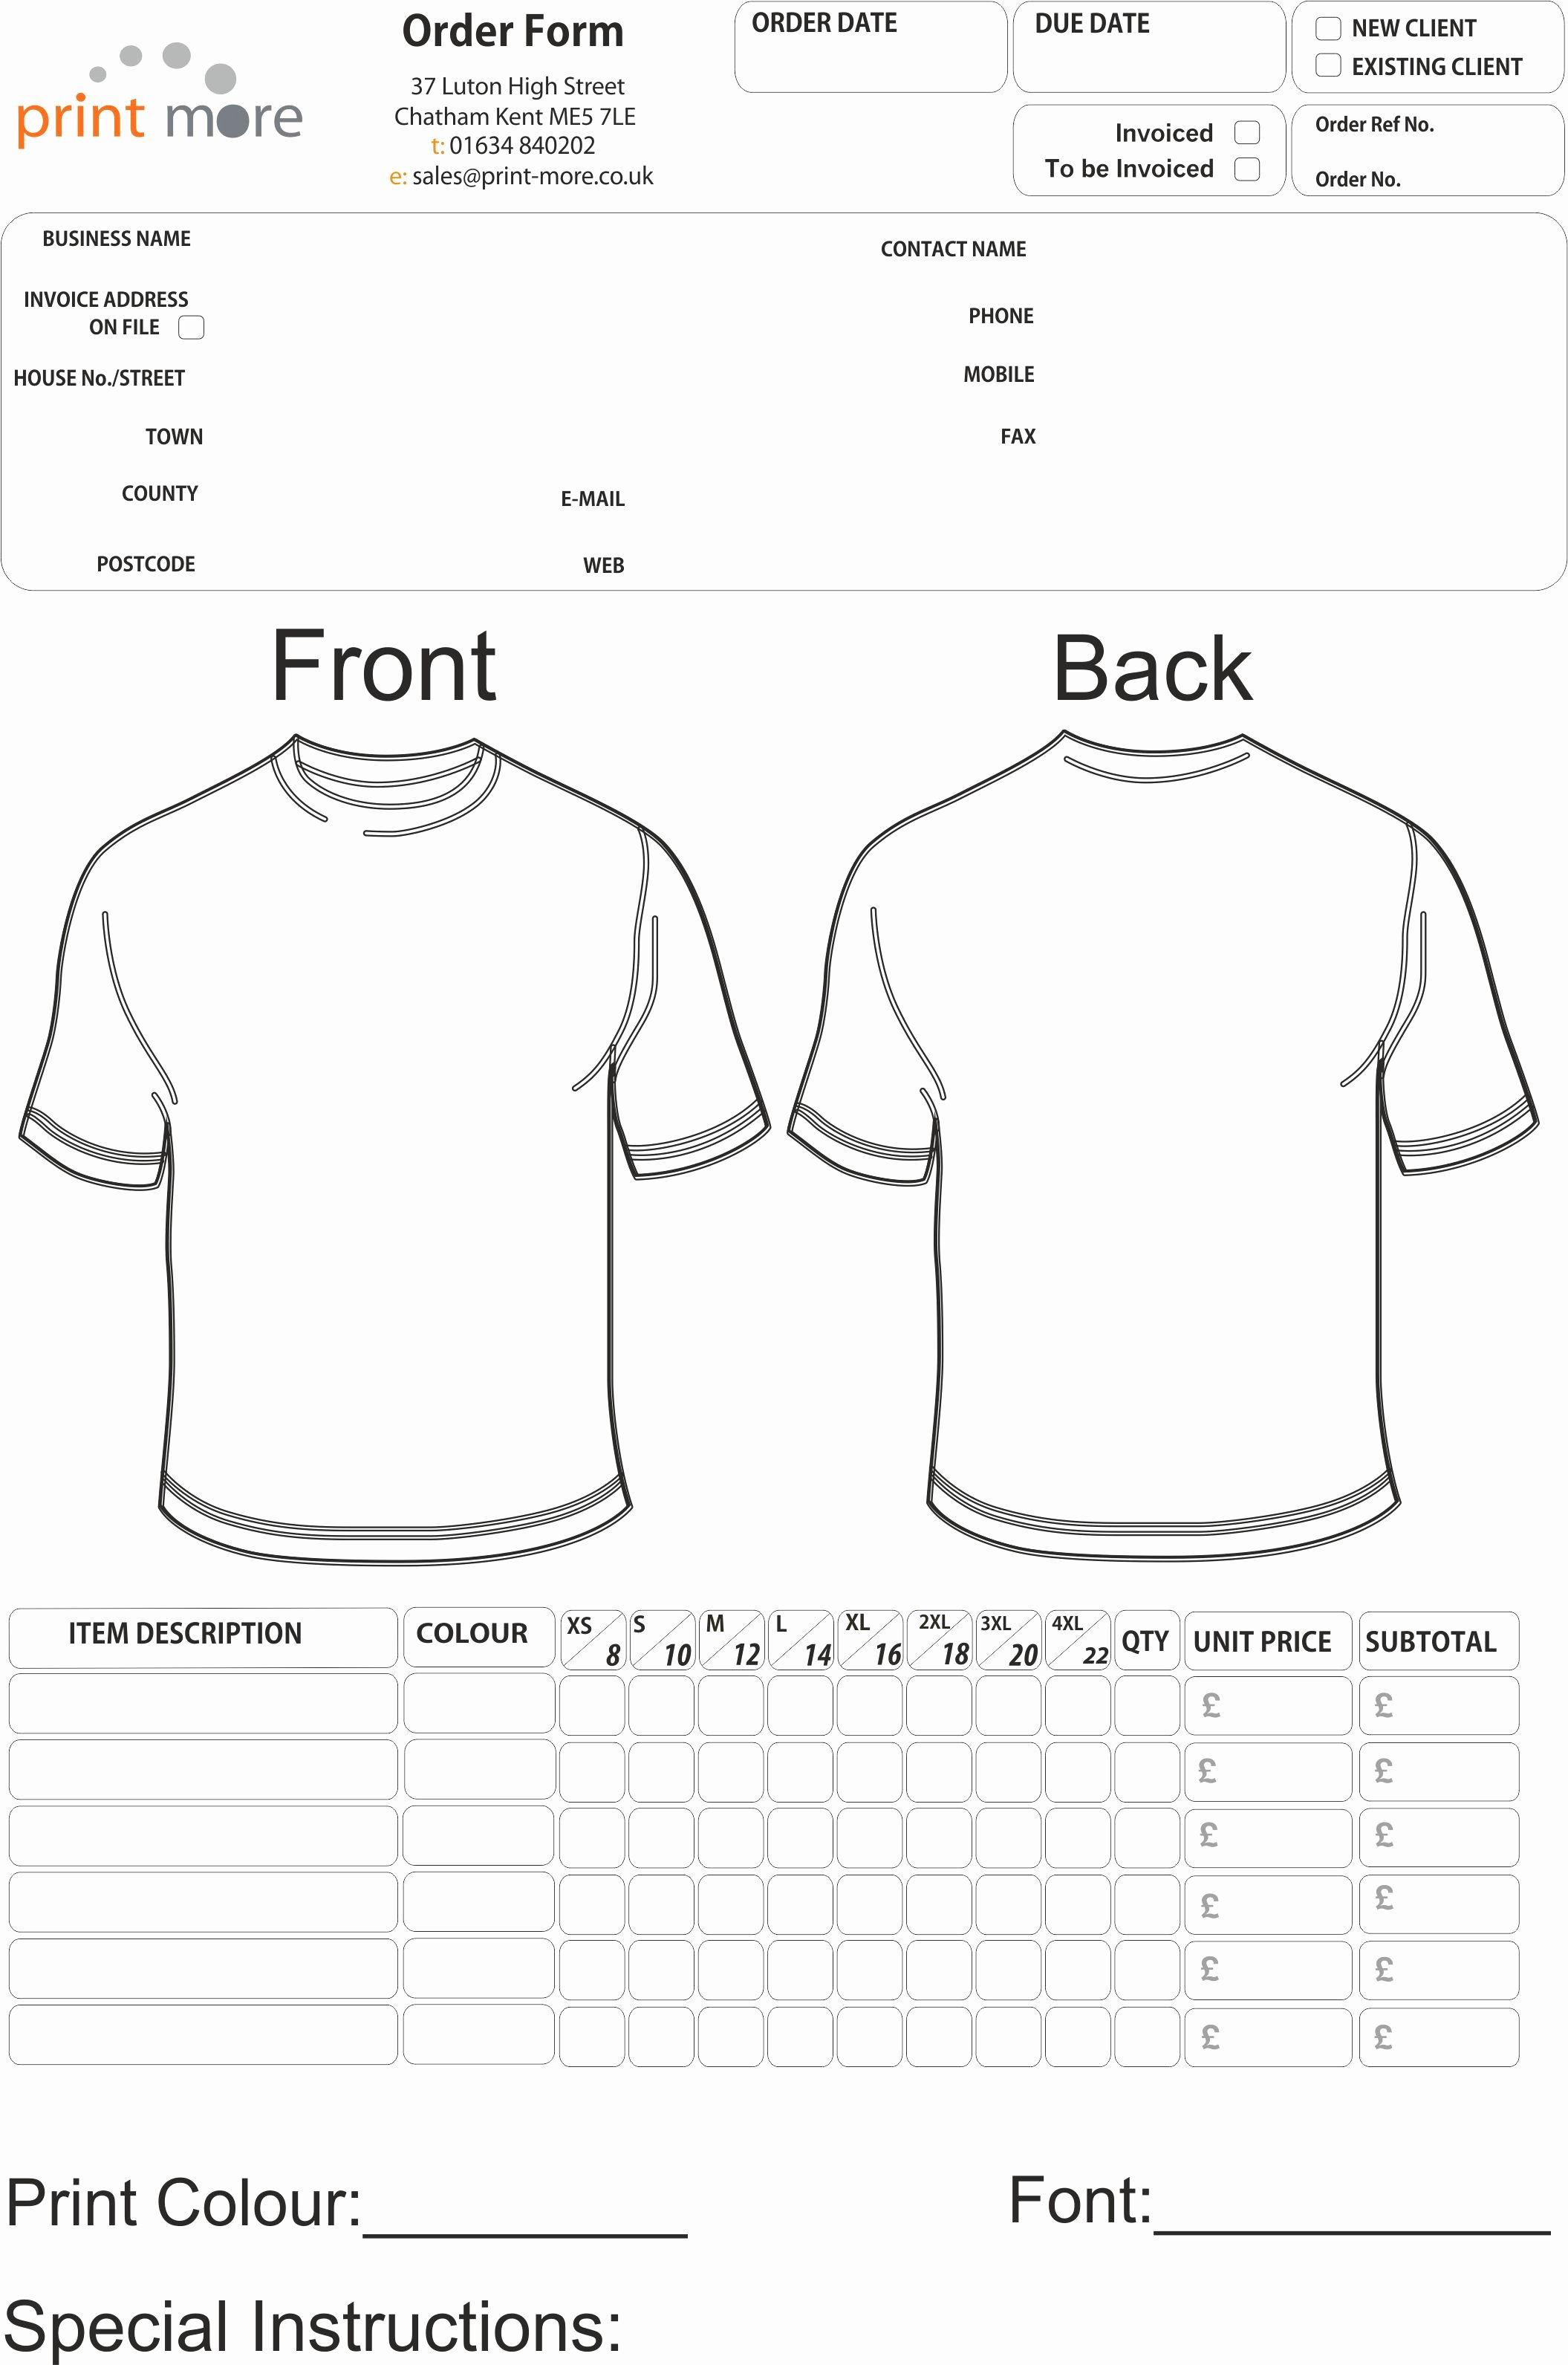 Clothing order form Template Fresh T Shirt order form Template